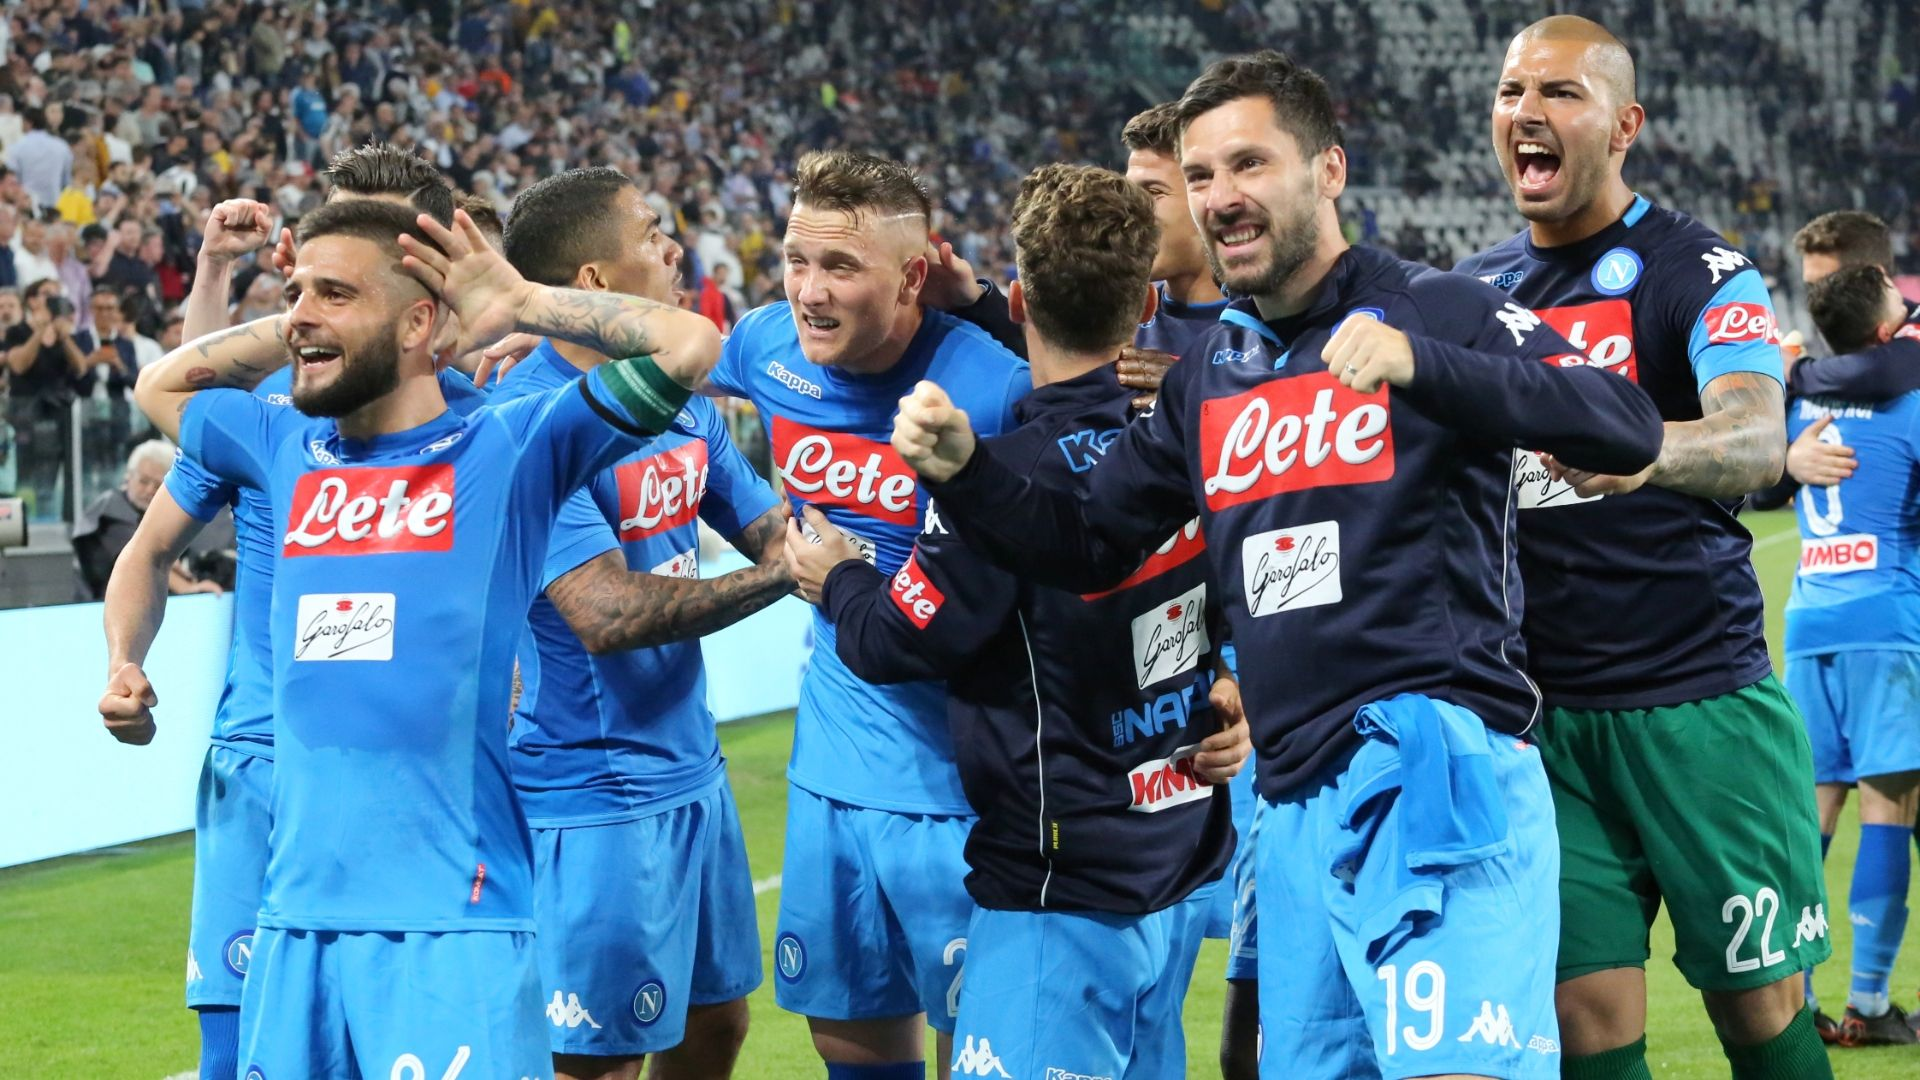 Napoli beat Juve to make a true Serie A title race